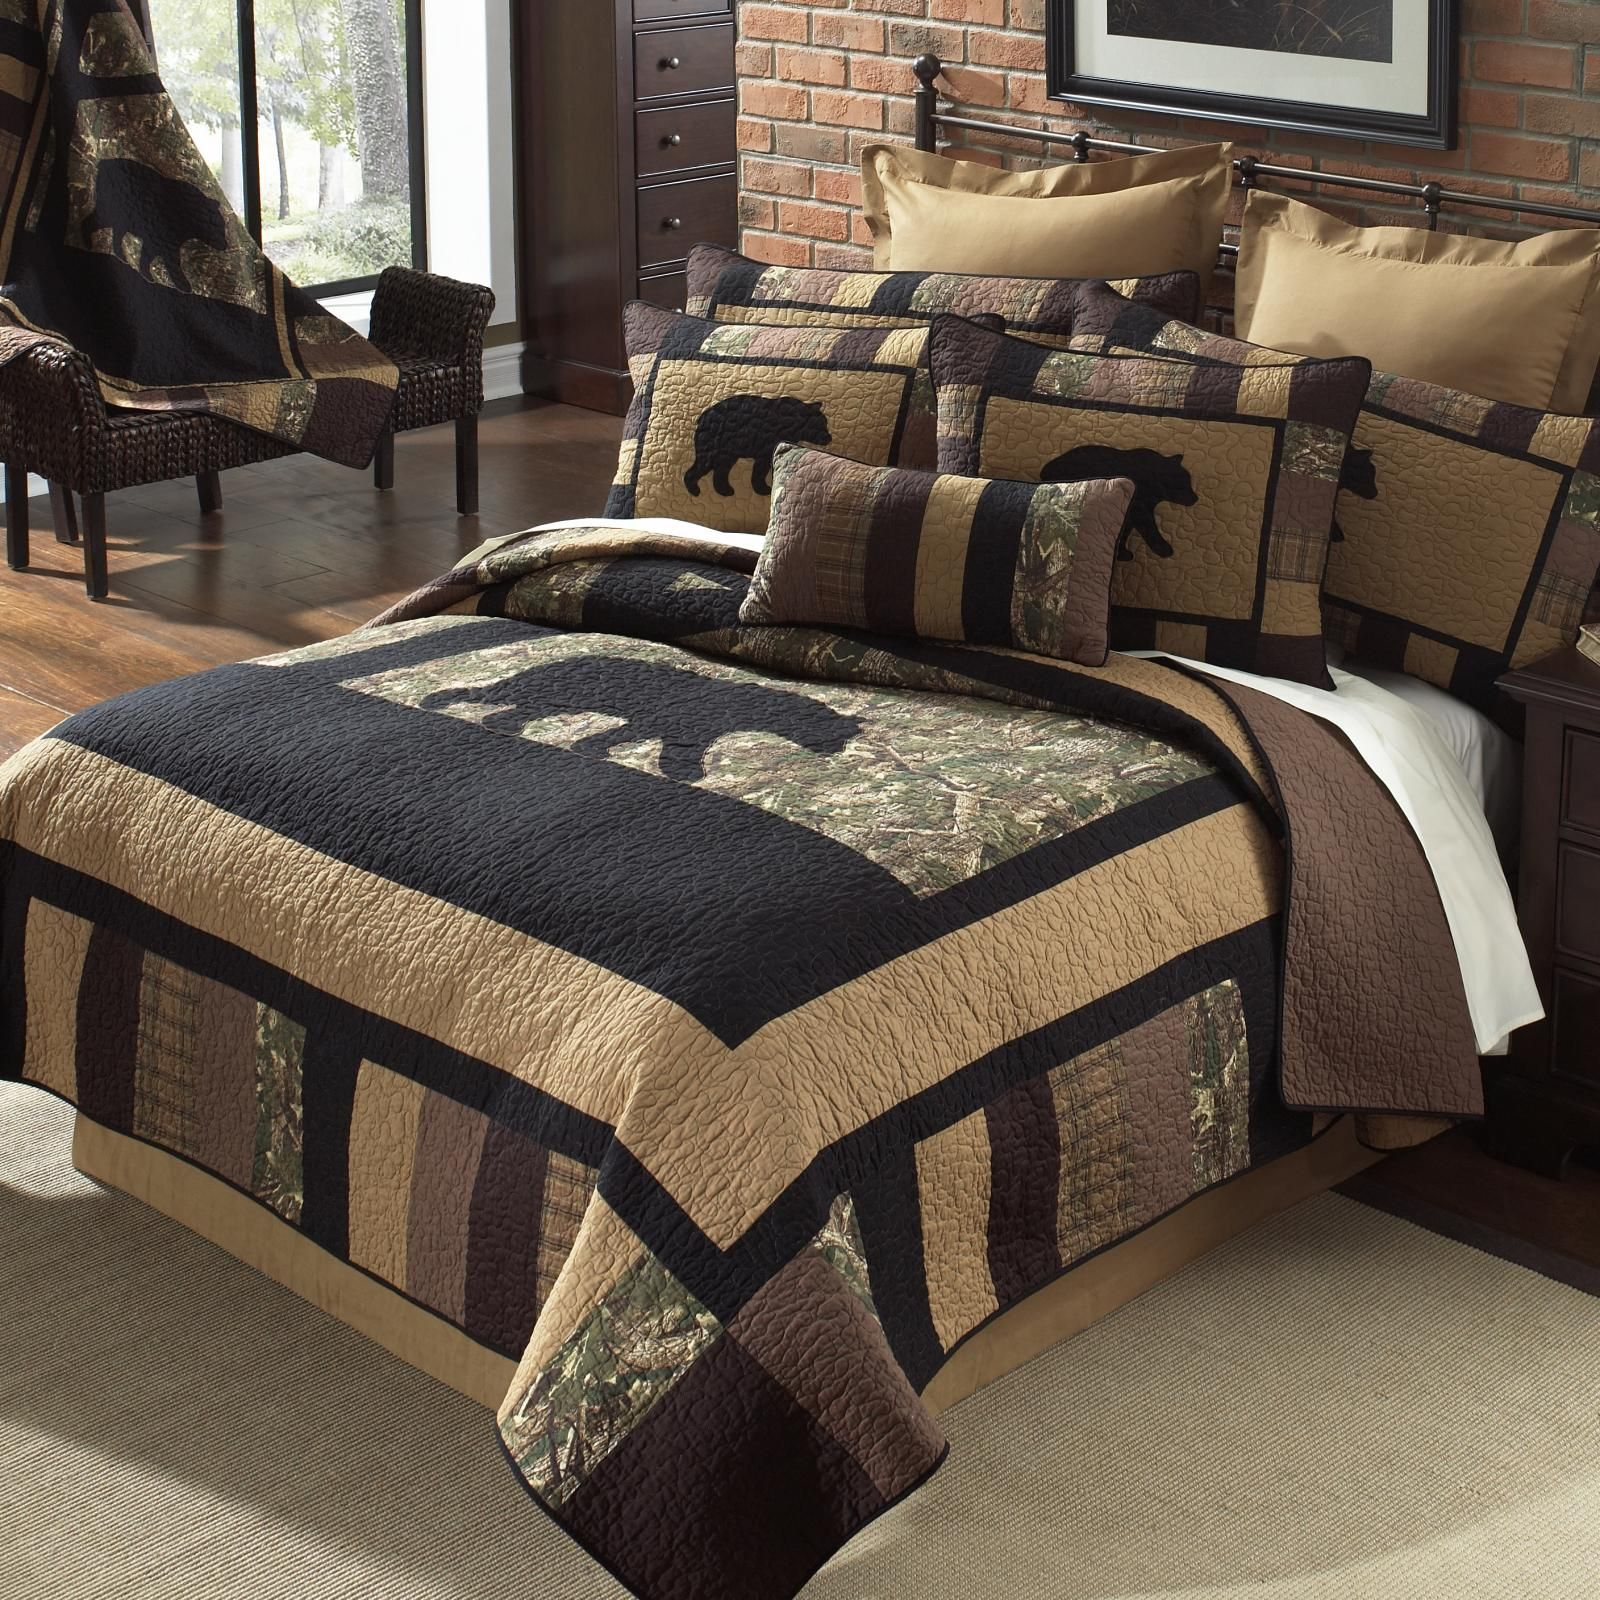 Big Bear Camo Bedding